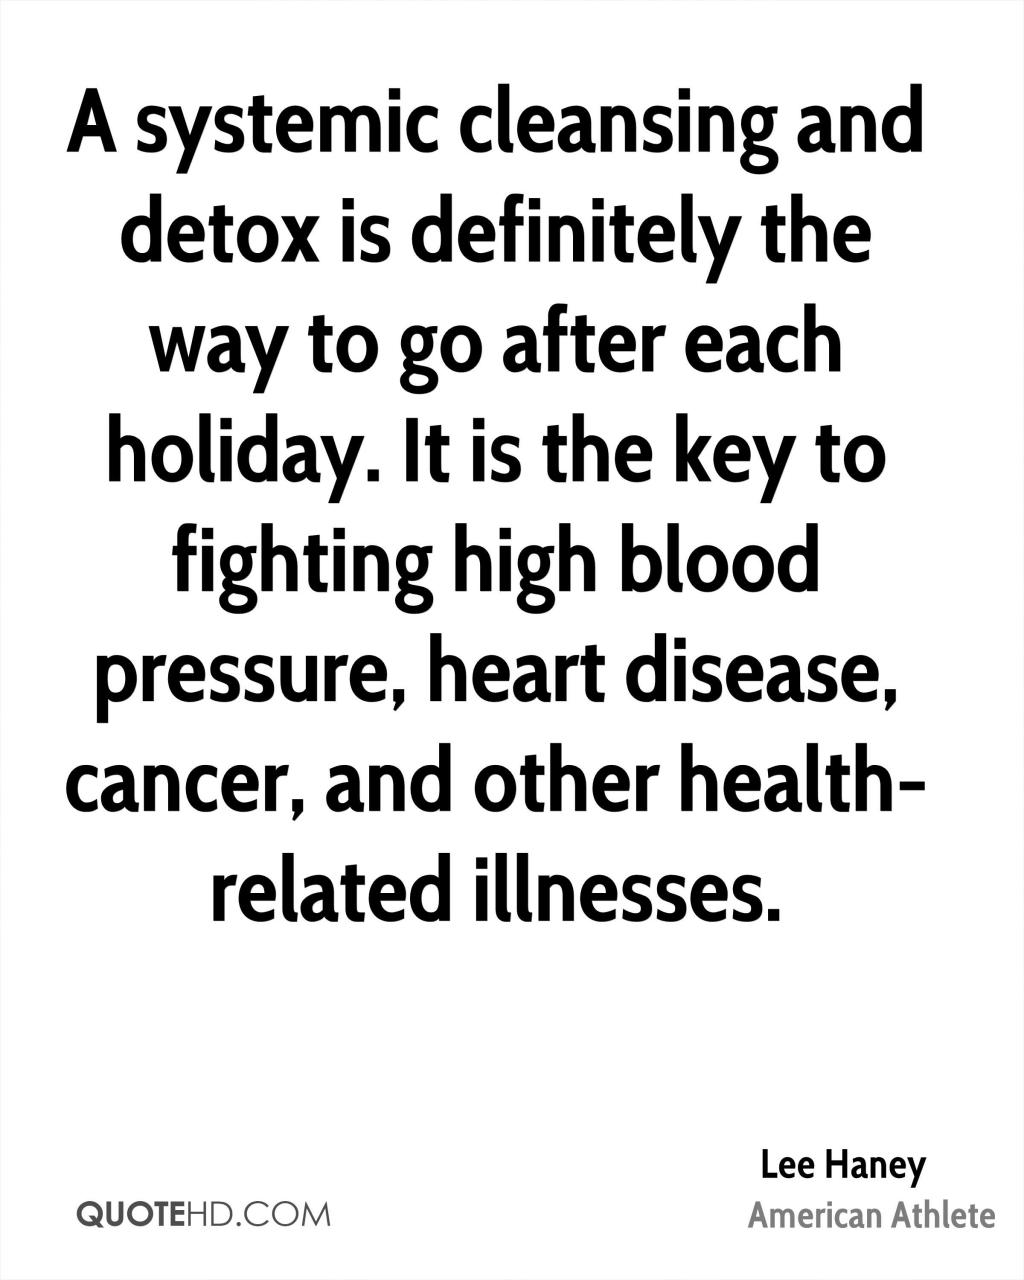 A Systemic Cleansing And Detox Is Definitely The Way To Go After Each Holiday It